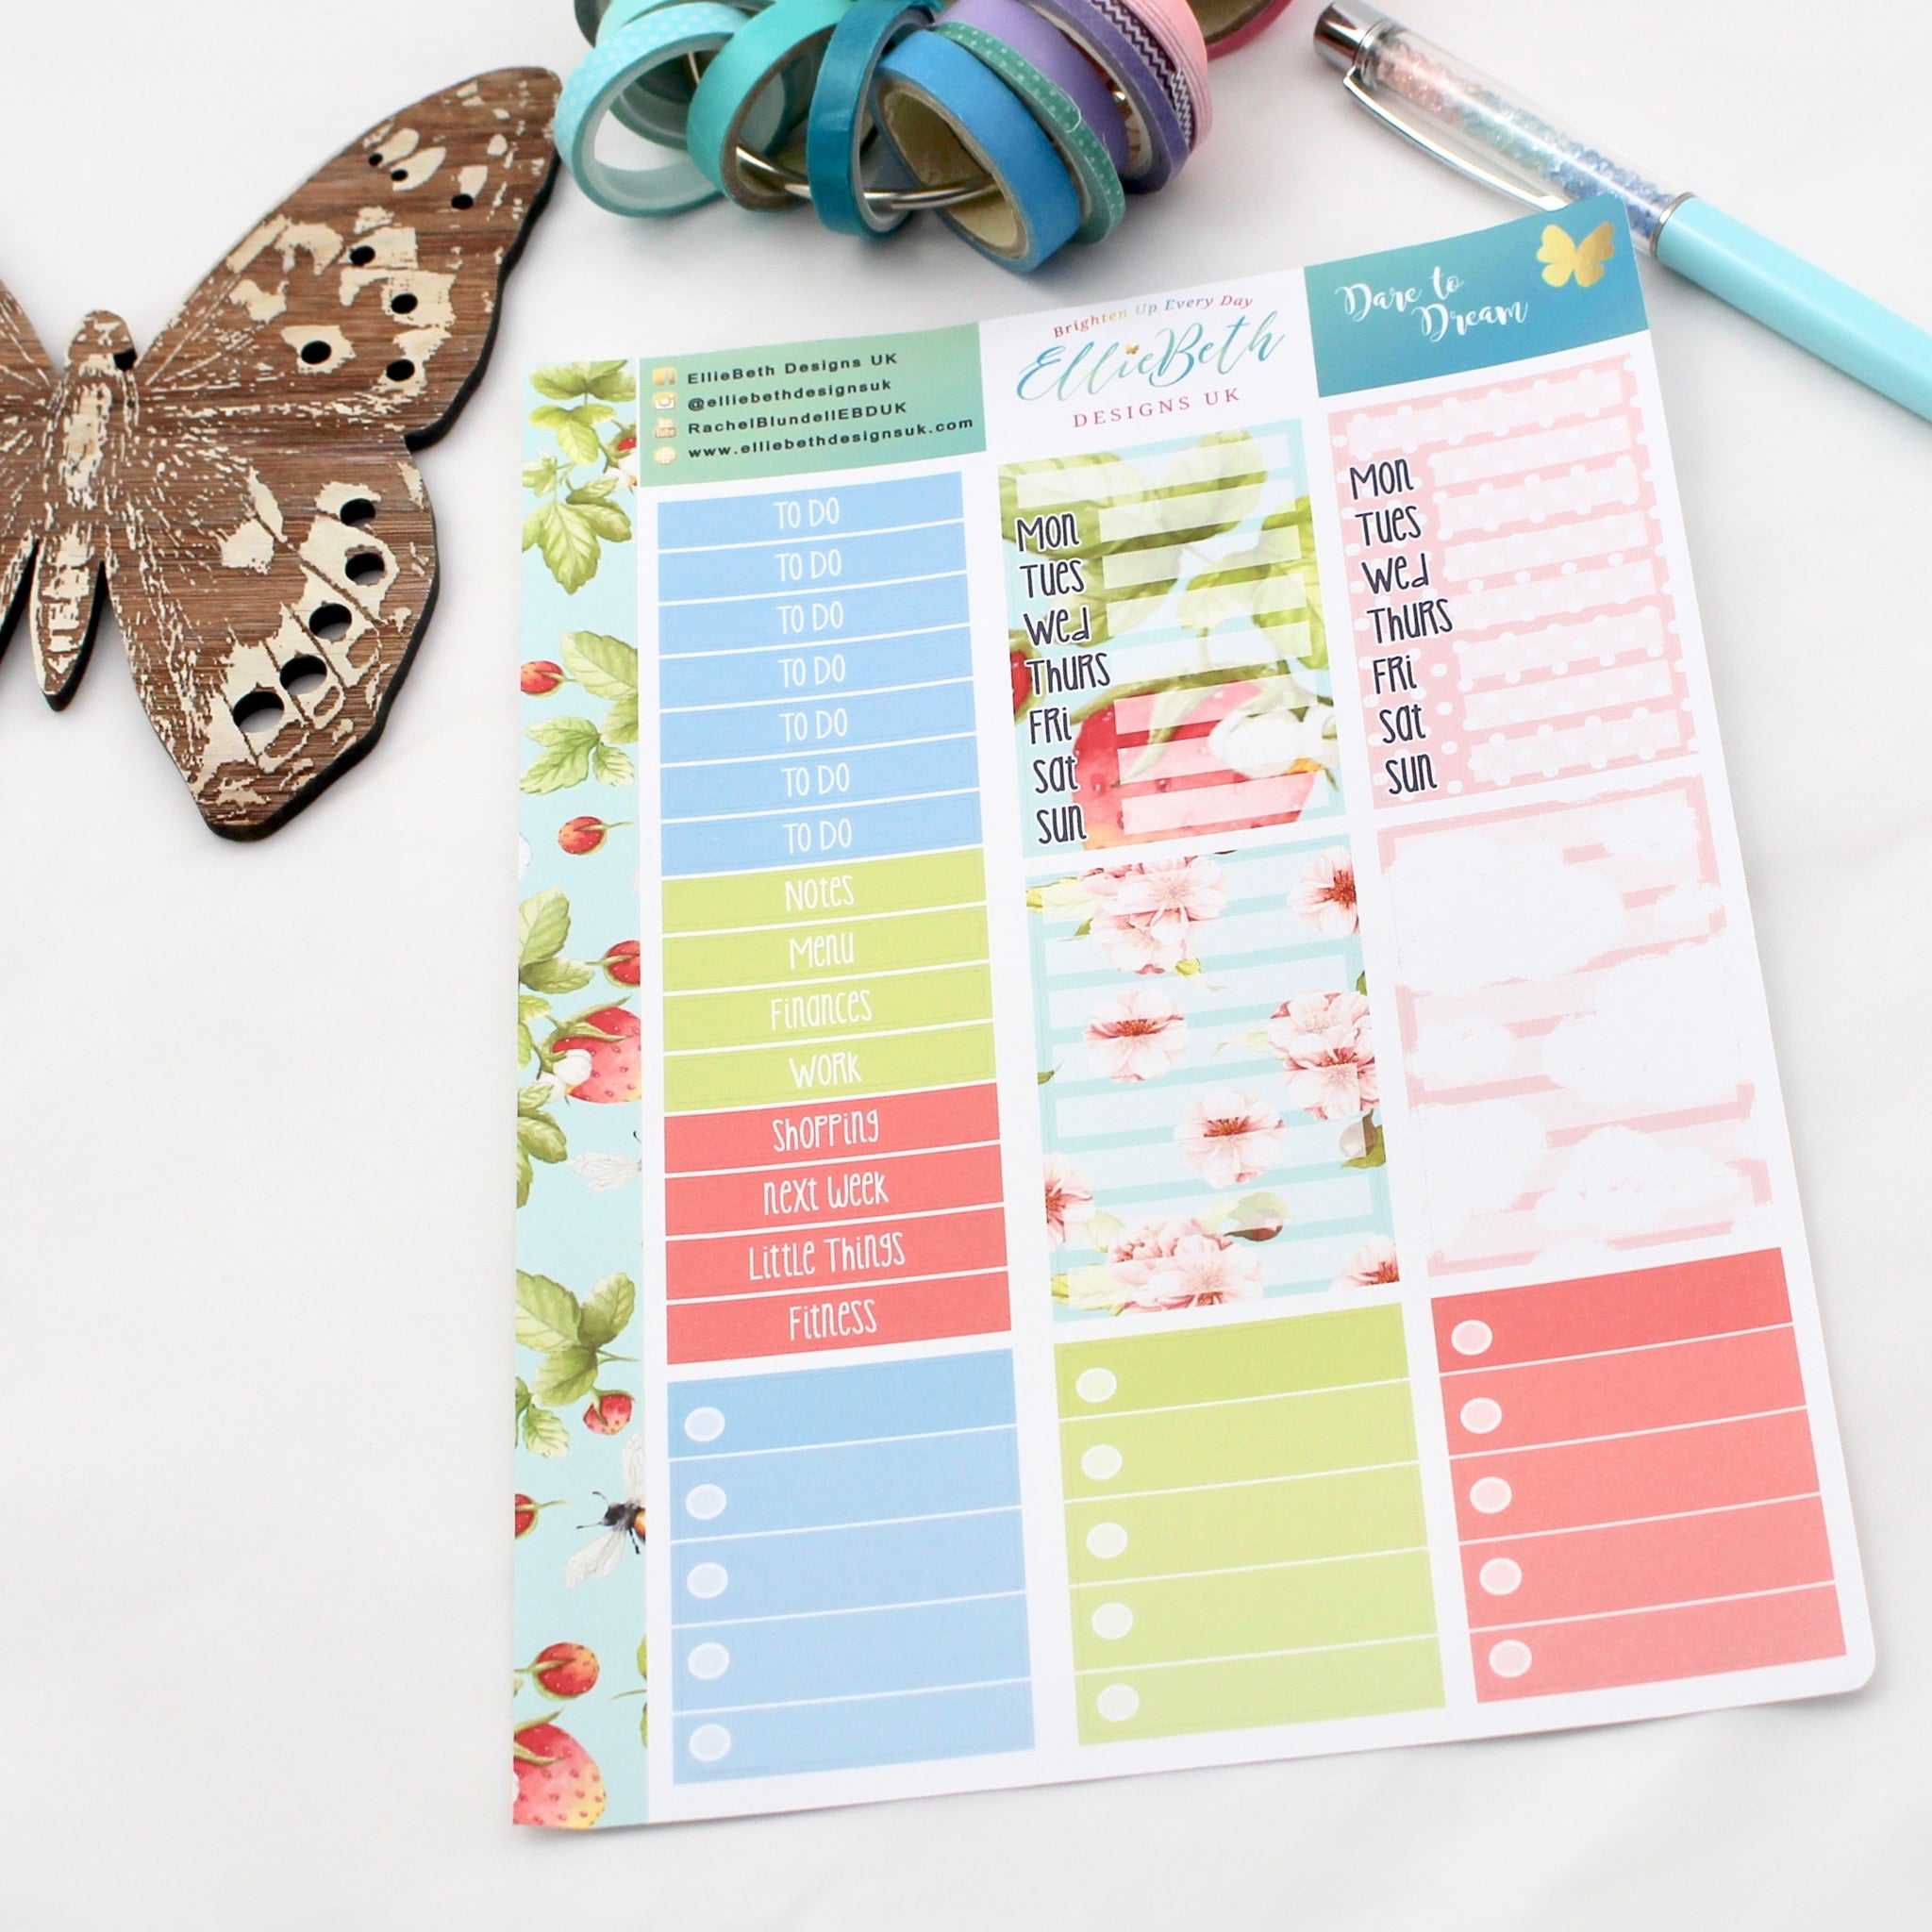 'Dare to Dream' - Make a List Sheet -  A5 binder ready planner stickers - EllieBeth Designs UK